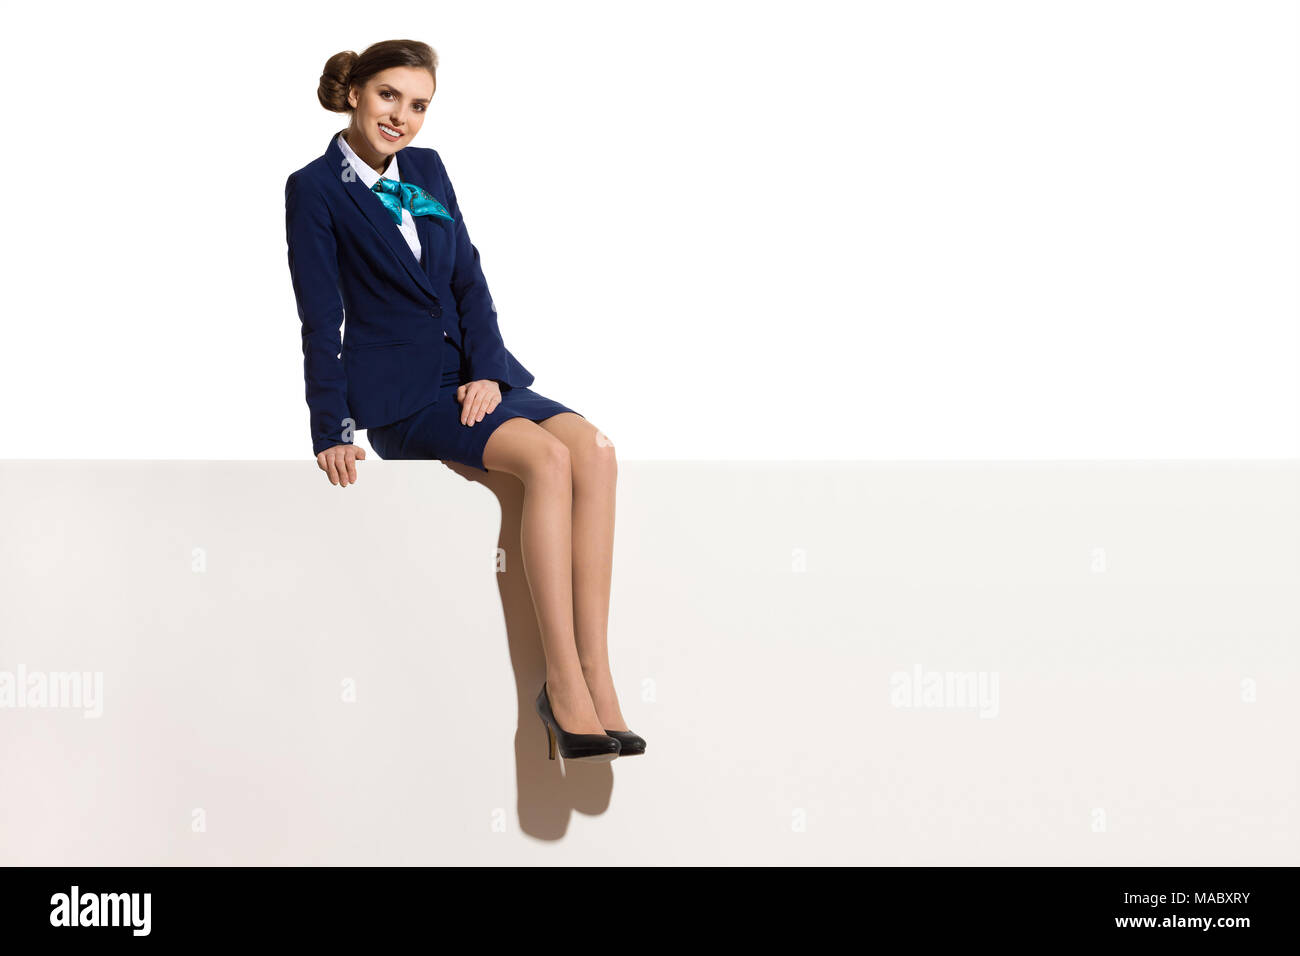 Businesswoman in blue suit and black high heels is sitting on a top of a white banner and smiling. Full length studio shot. - Stock Image